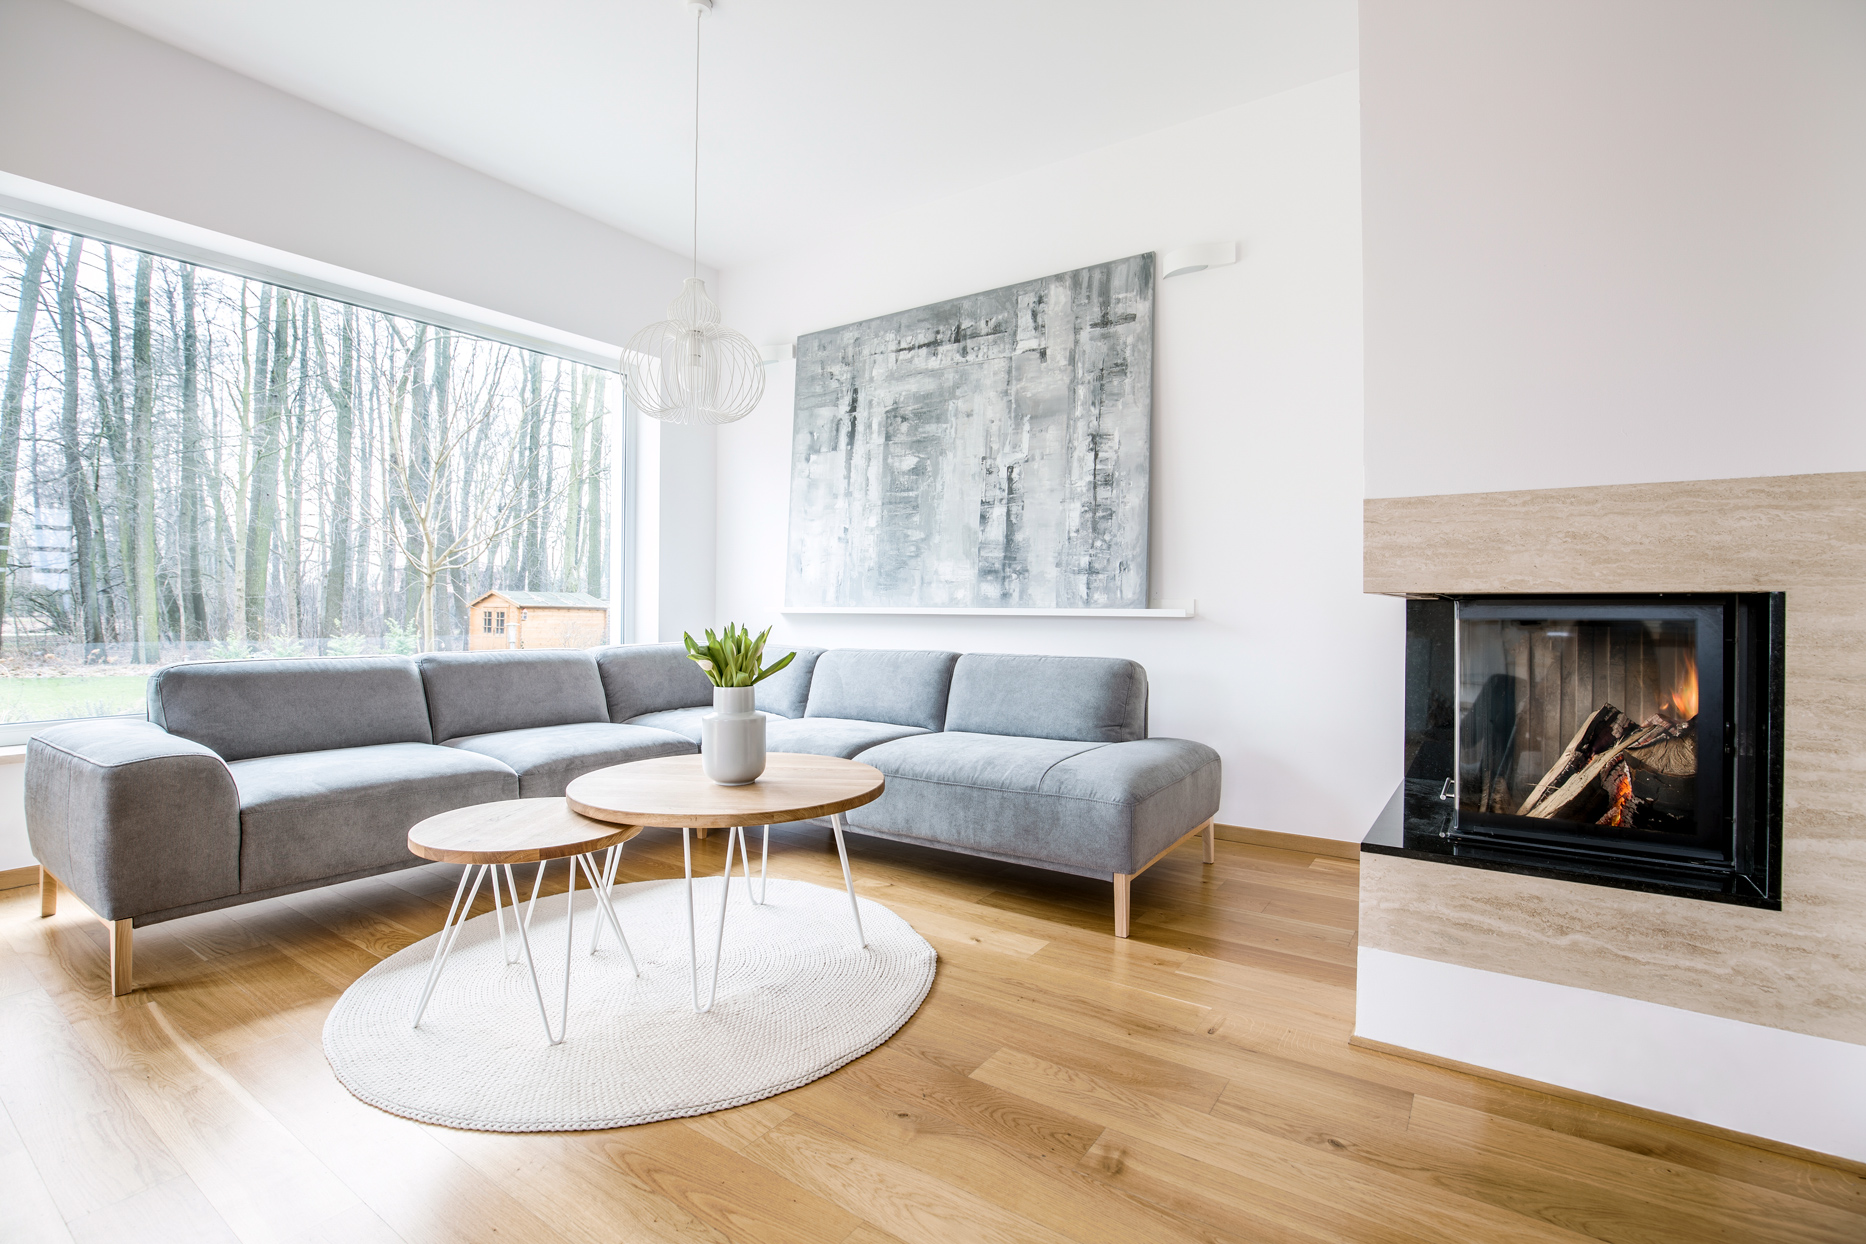 minimalist neutral-colored living room with fireplace